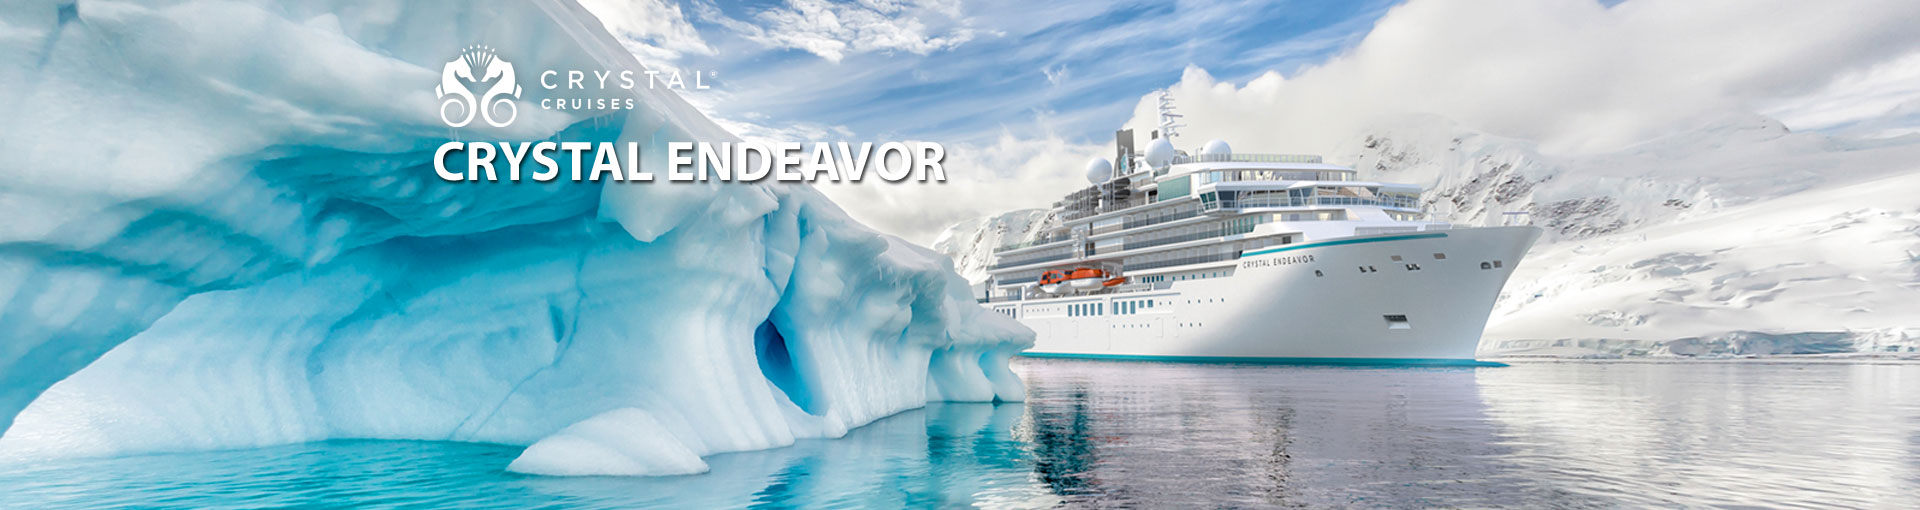 Crystal Cruises Crystal Endeavor Ship